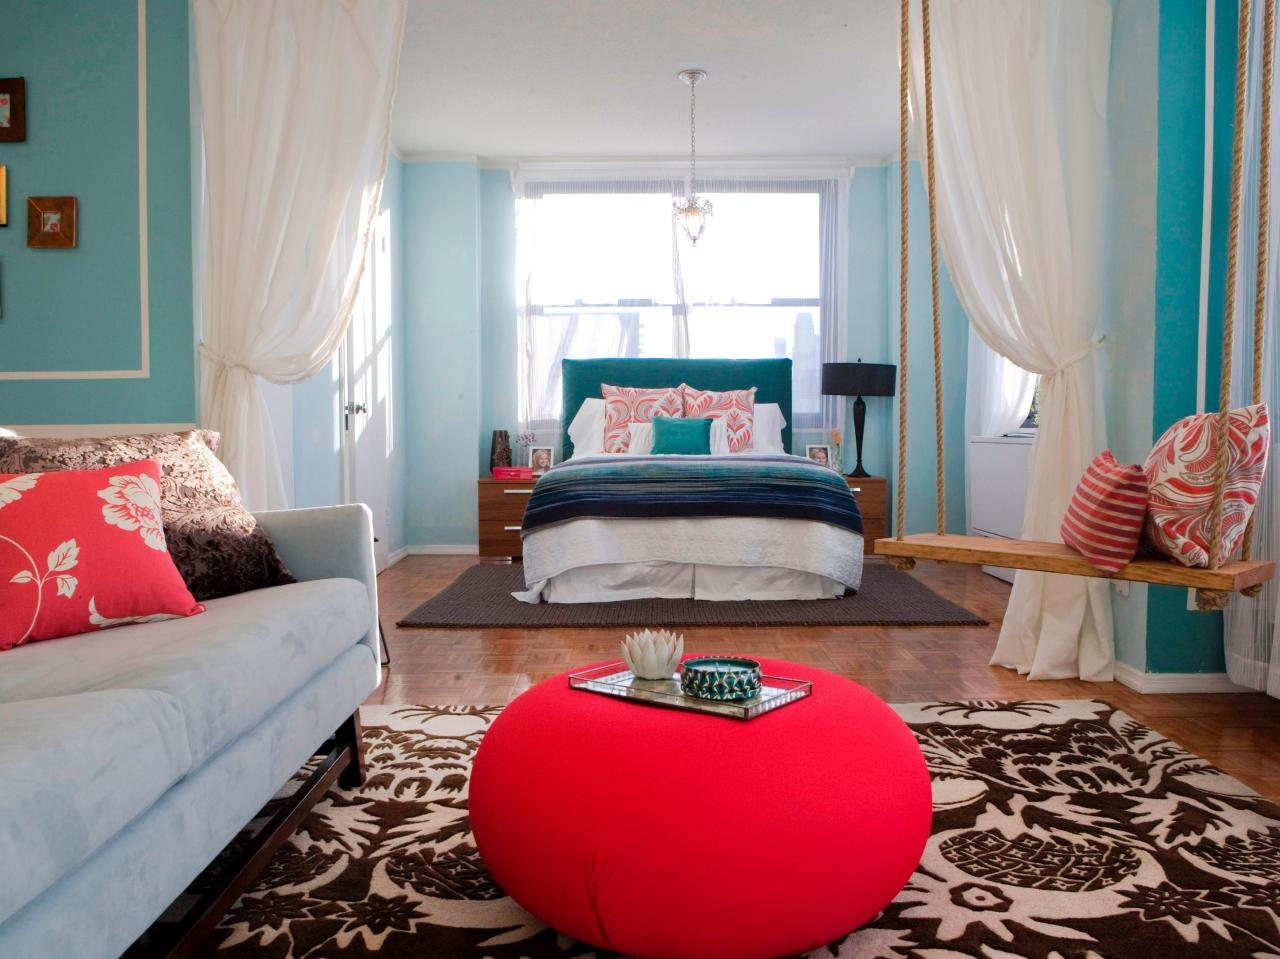 Chic Accessory Design Ideas With Red Bench On Nice Carpet